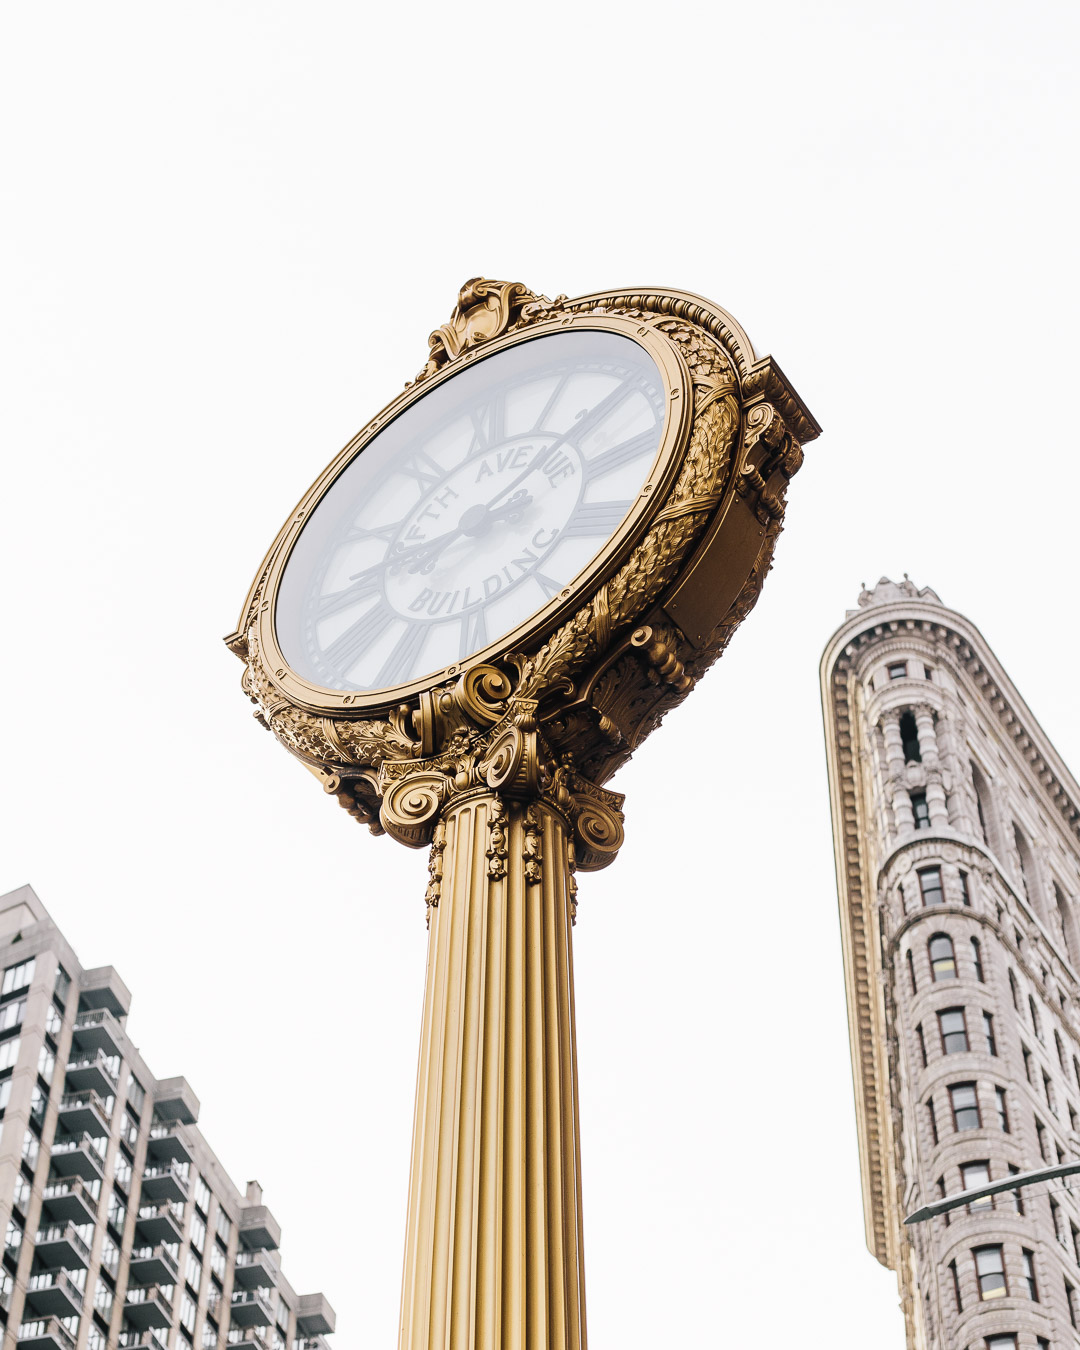 fletkefoto_Flatiron-Clock_how-to-handle-the-business_june-2019-article-image_Radiant-NYC_Web-Res-Instagram.jpg